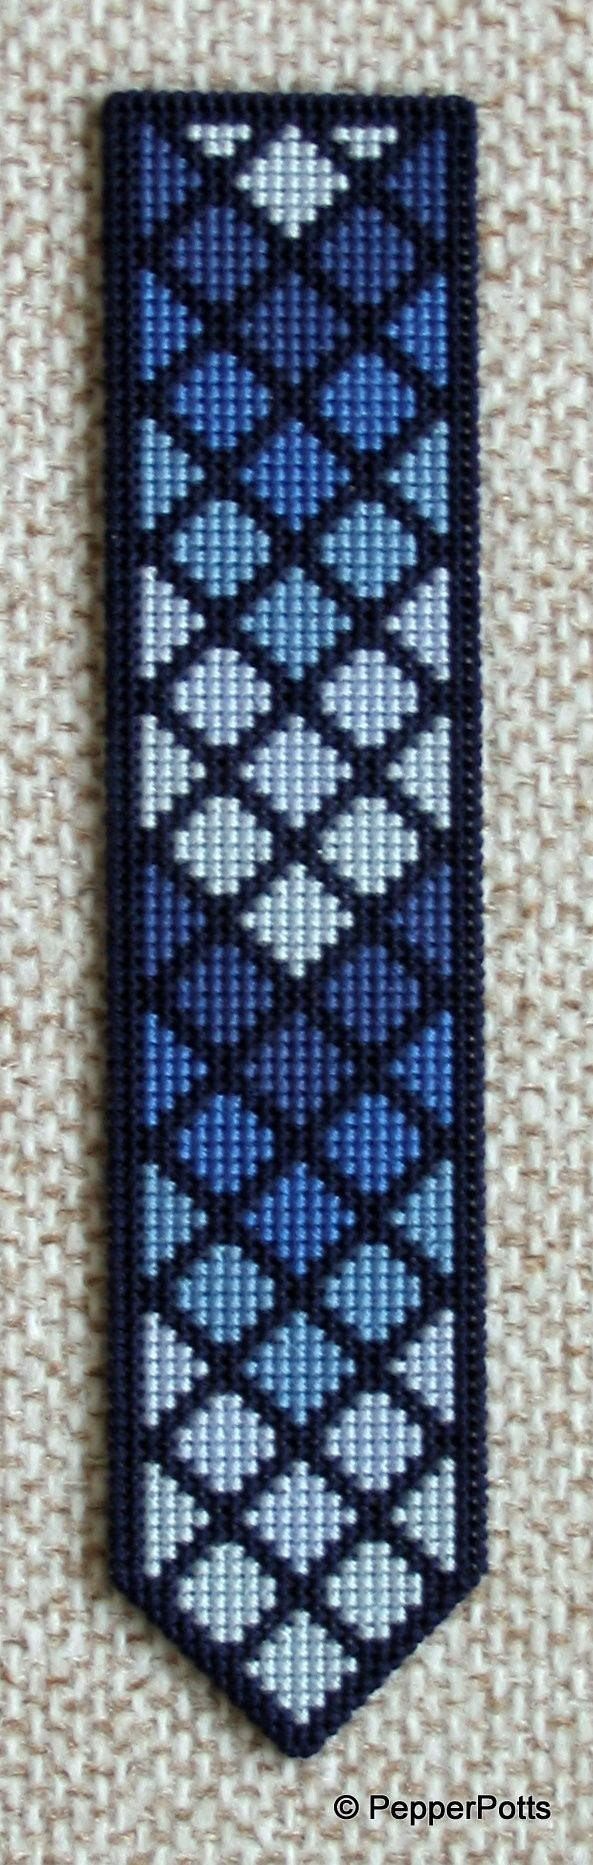 Worked on 14ct plastic canvas in a cross stitch, using various shades of blue stranded cotton leftovers. The diamonds were worked first, then the contrasting lines filled in in a very dark navy blue stranded cotton. It is backed with thin craft foam using a double sided adhesive film.